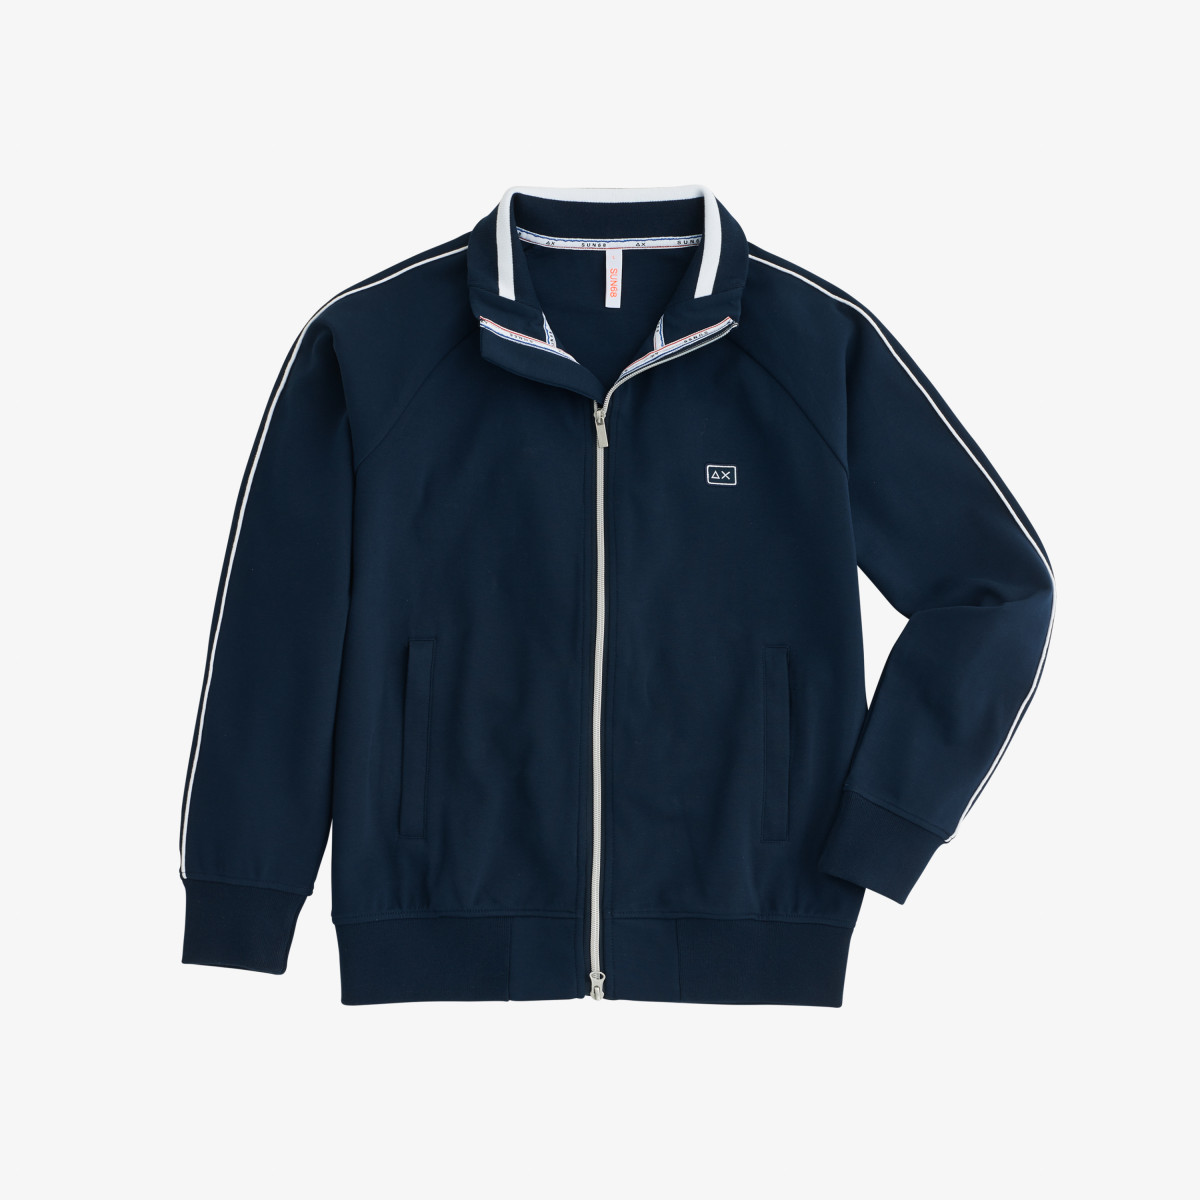 FULL ZIP HERITAGE COTT. FL. NAVY BLUE